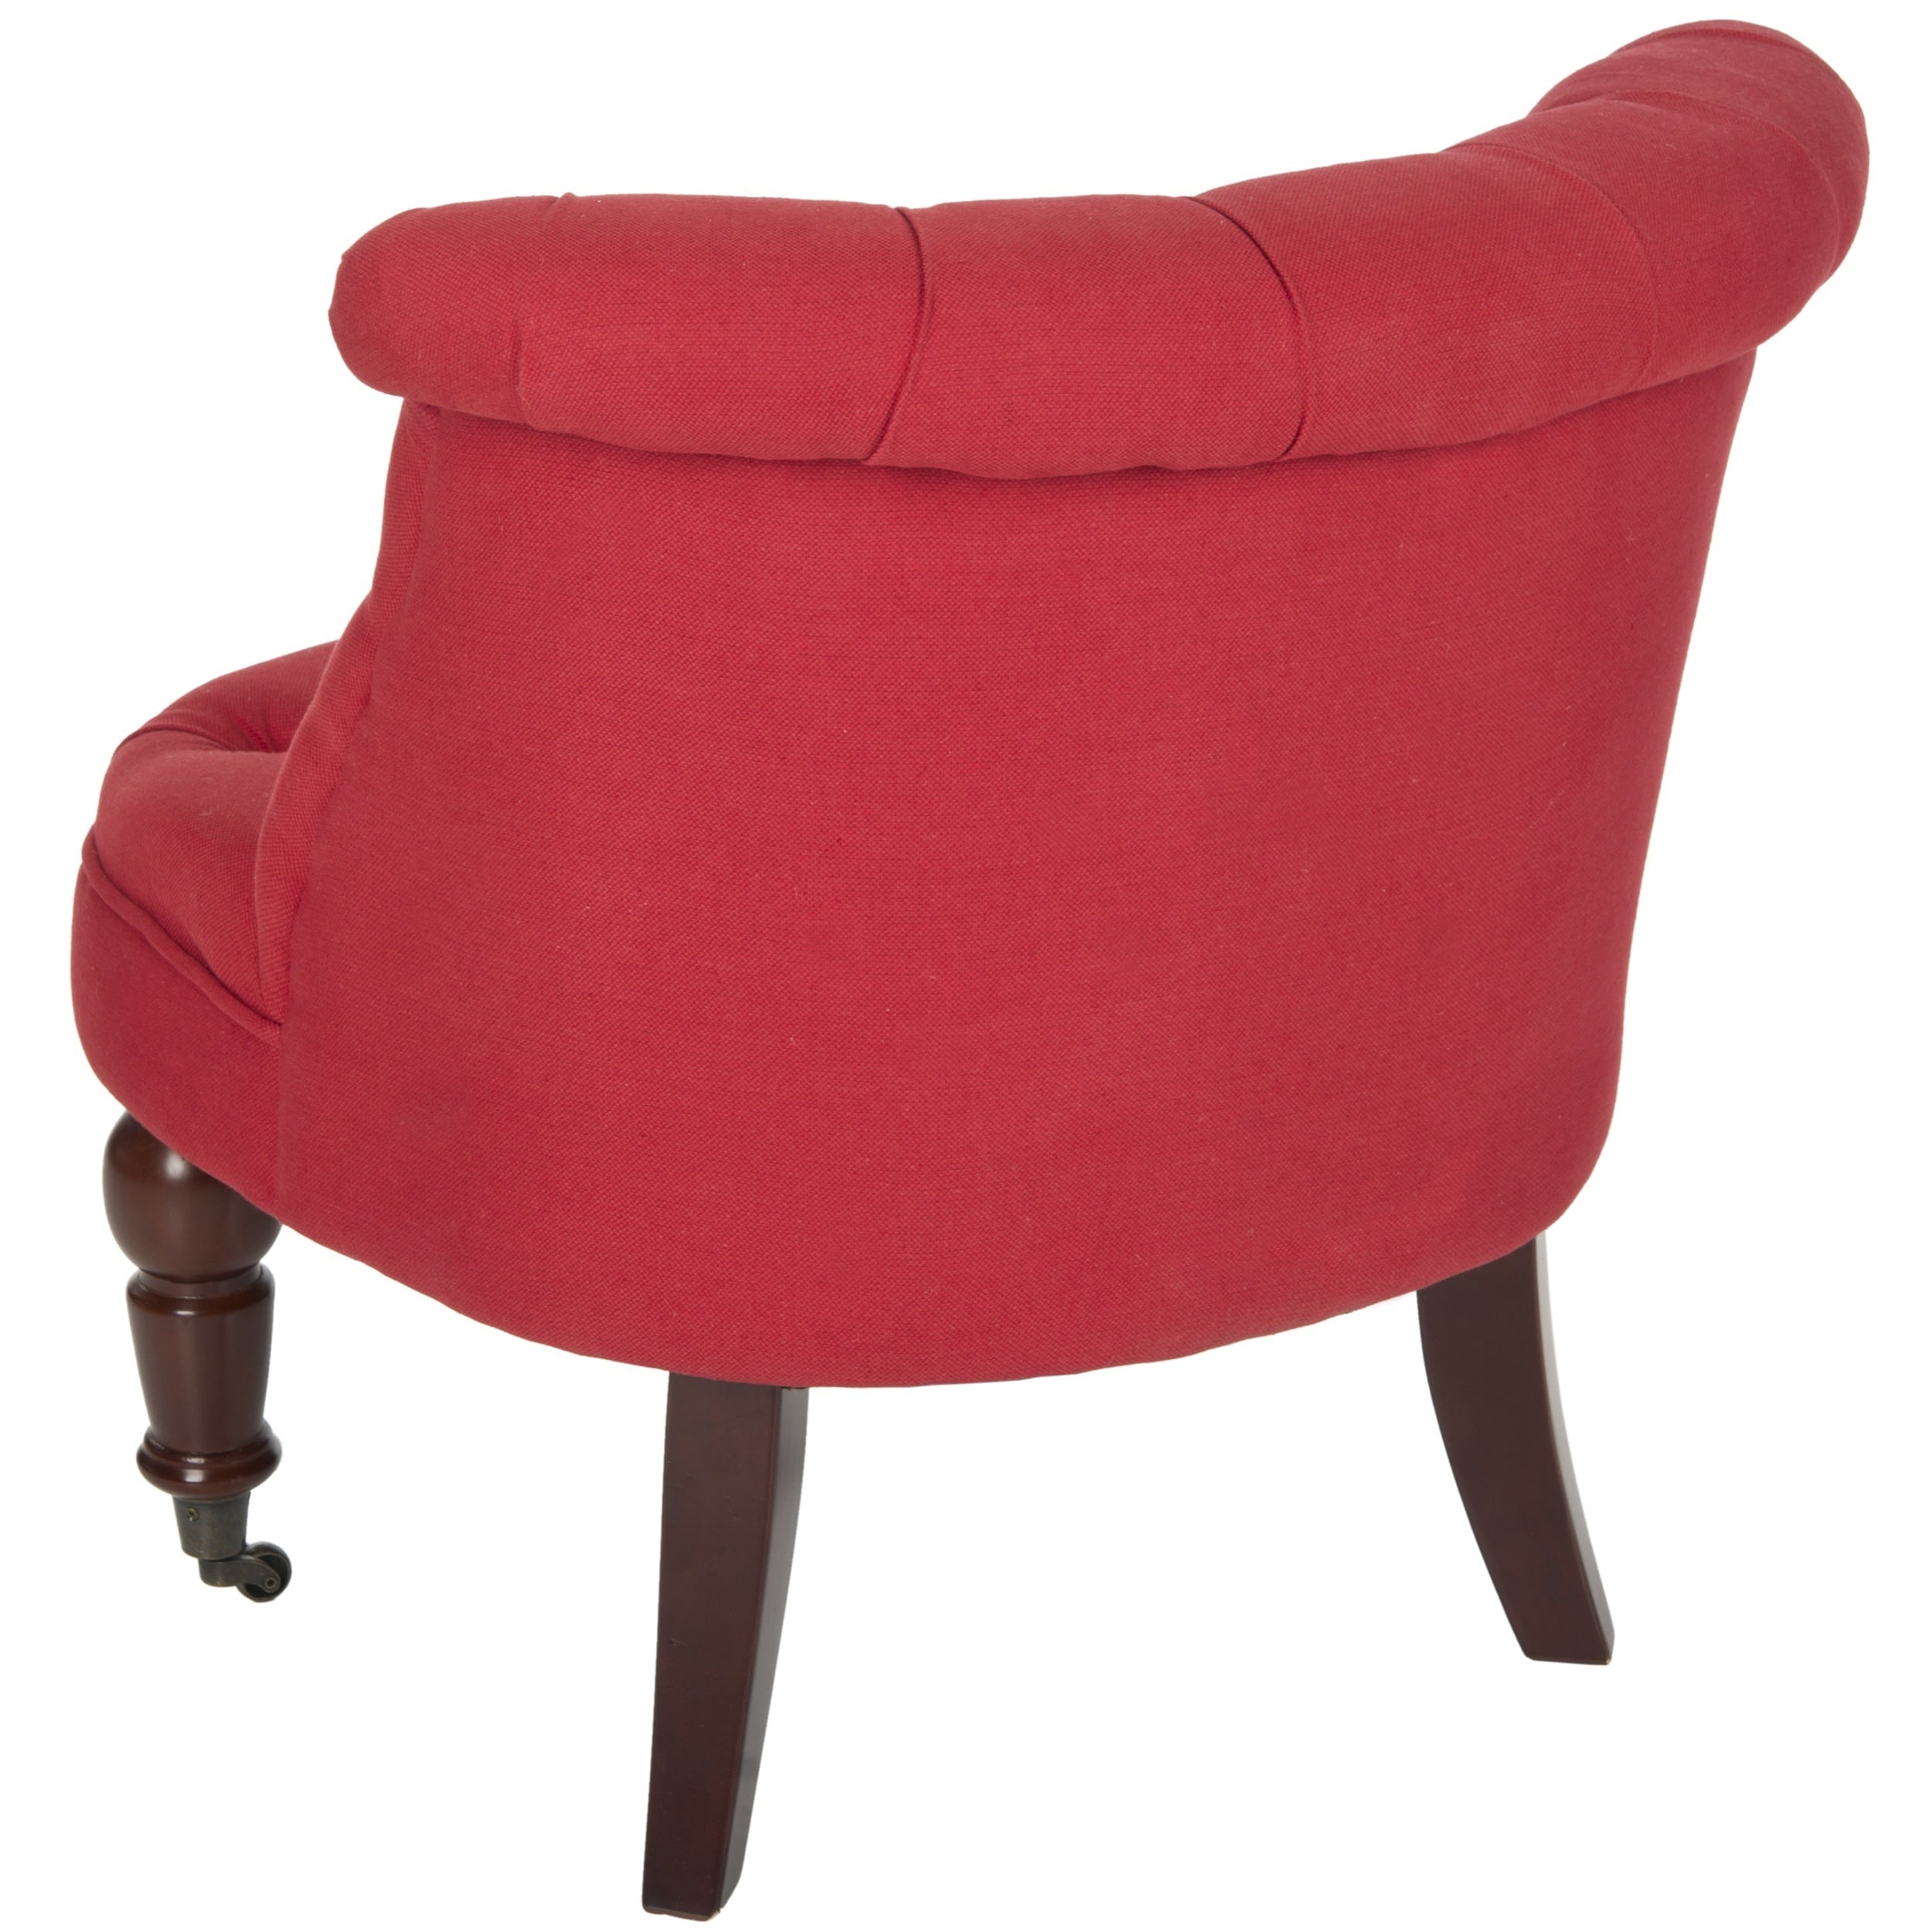 Charmant Shop Safavieh En Vogue Carlin Cranberry Tufted Chair   Free Shipping Today    Overstock.com   8307000